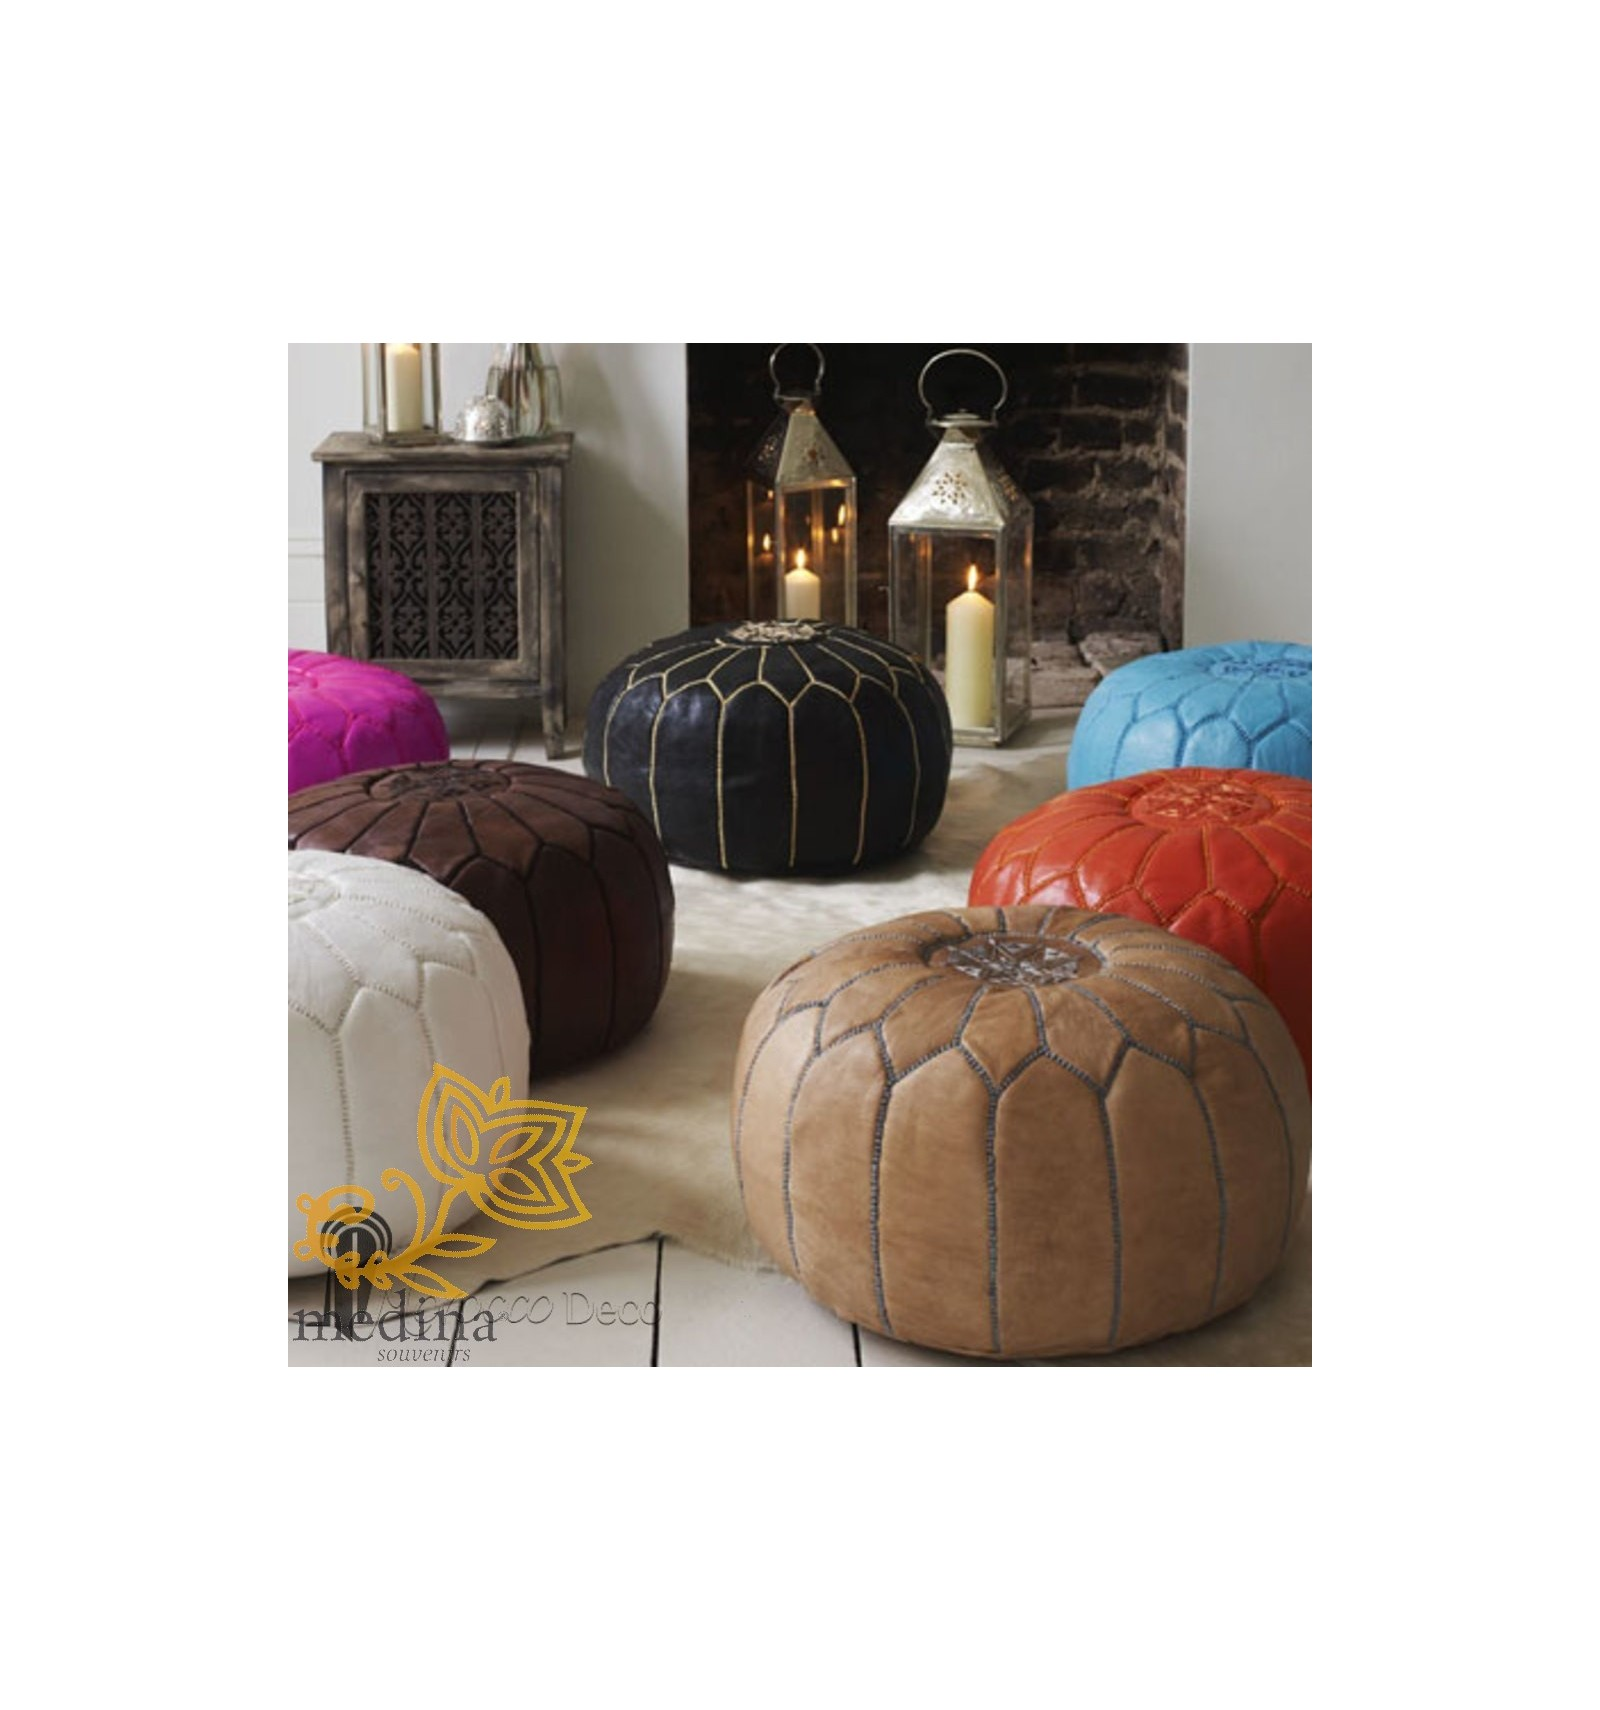 pouf design cuir marocain couleur chocolat un pouf enti rement en cuir fabriqu et cosu la main. Black Bedroom Furniture Sets. Home Design Ideas